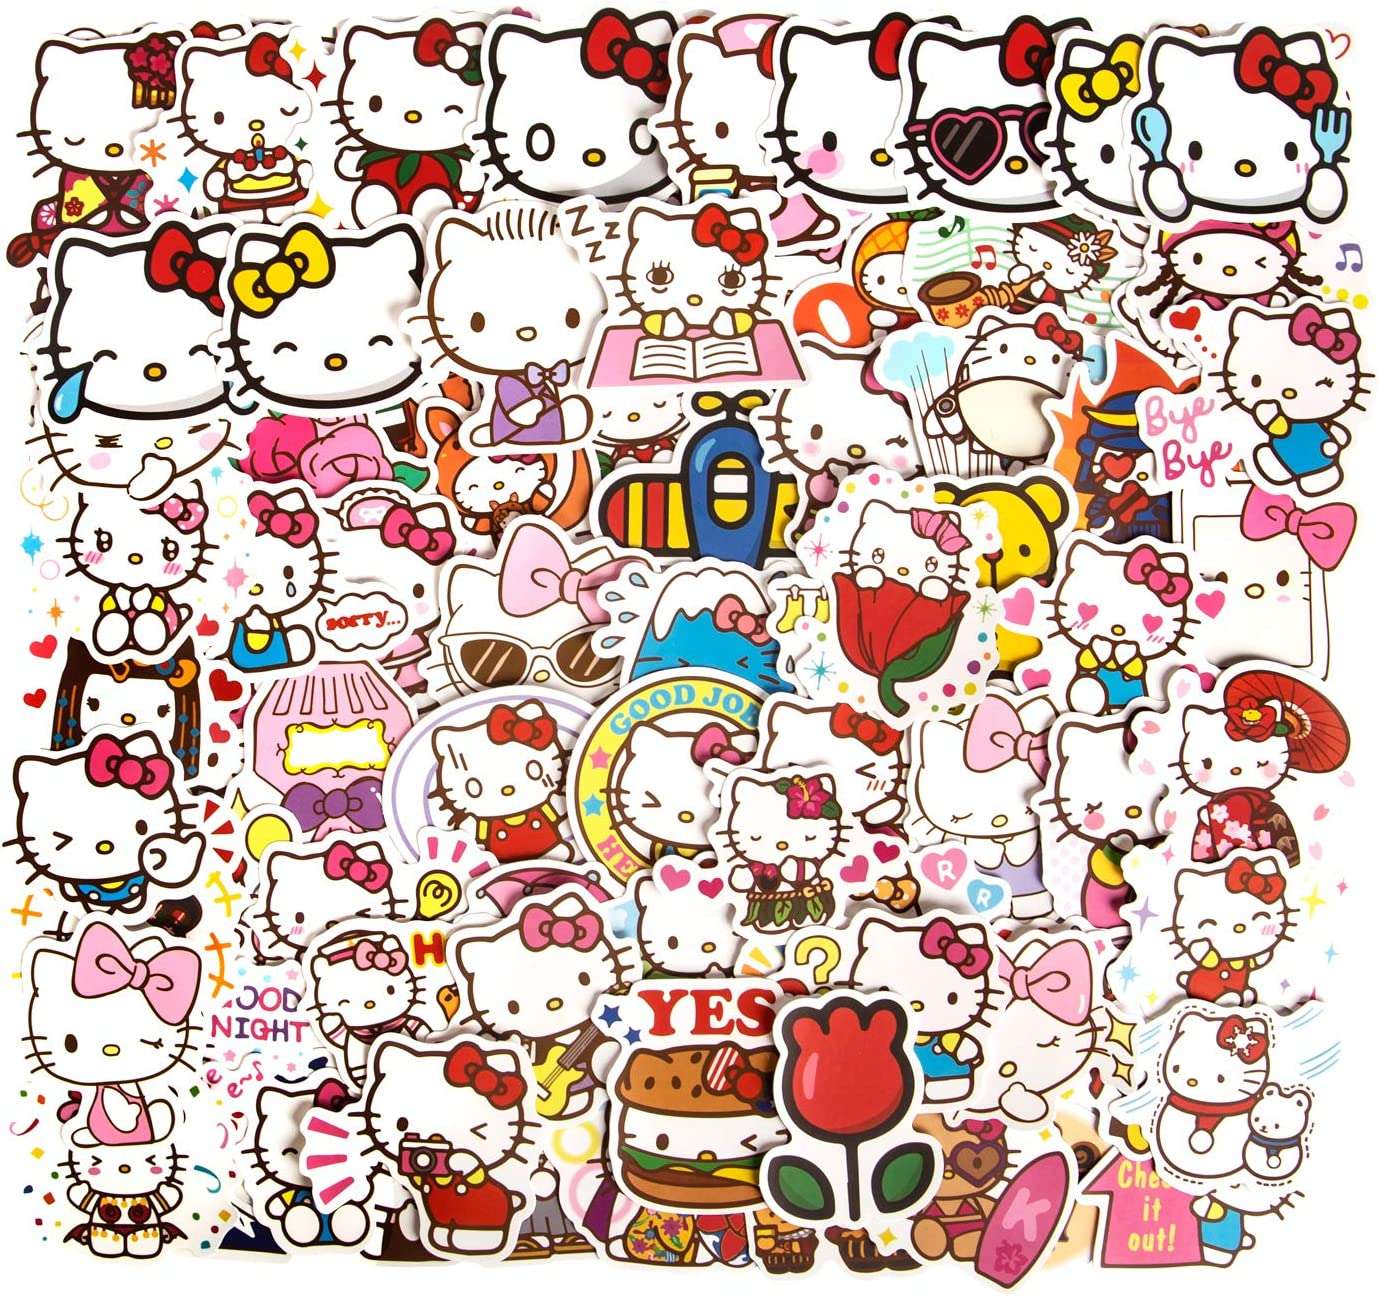 100pcs Hello Kitty Stickers Kawaii Stickers Vinyl Waterproof Stickers Cute Stickers for Kids Teens Laptop Stickers Water Bottle Stickers Computer Stickers for Guitar Computer Decal